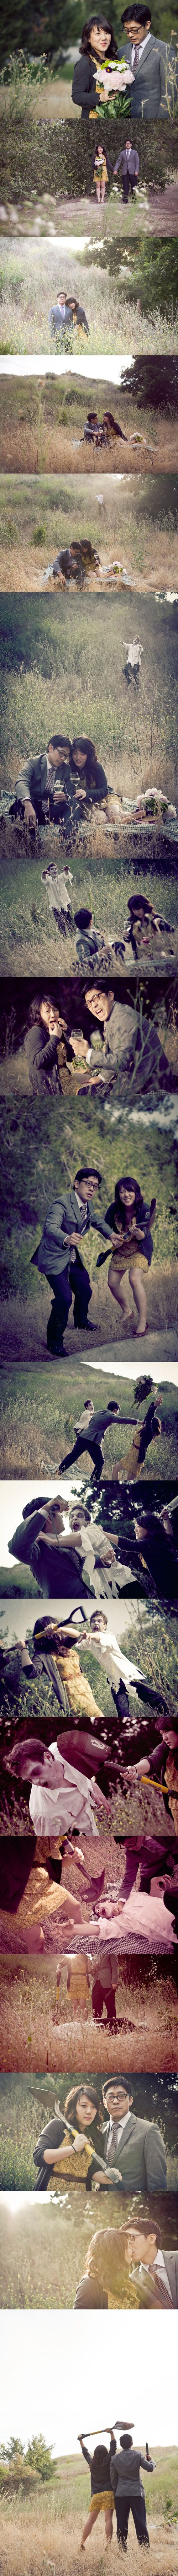 Zombie_Engagement_Photos_by_Amanda_Rynda